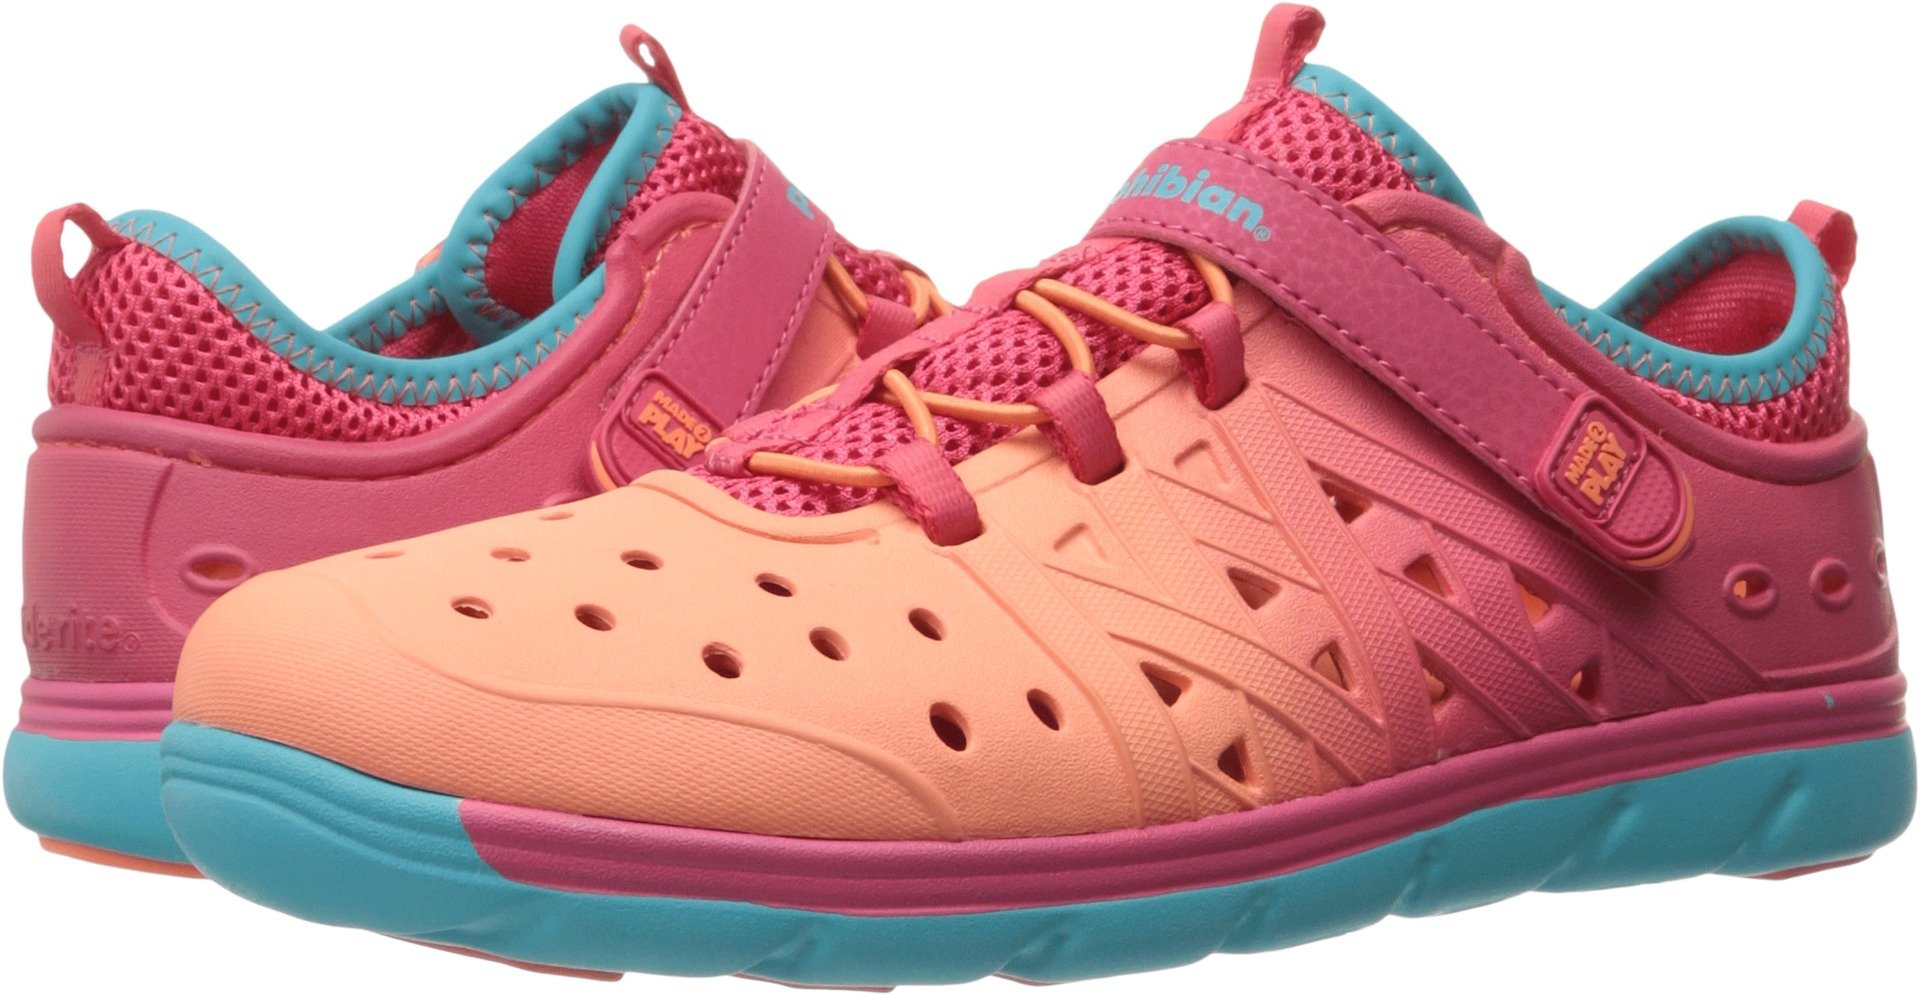 Stride Rite Girls' Made 2 Play Phibian,Coral/Turquoise EVA,US 11 M